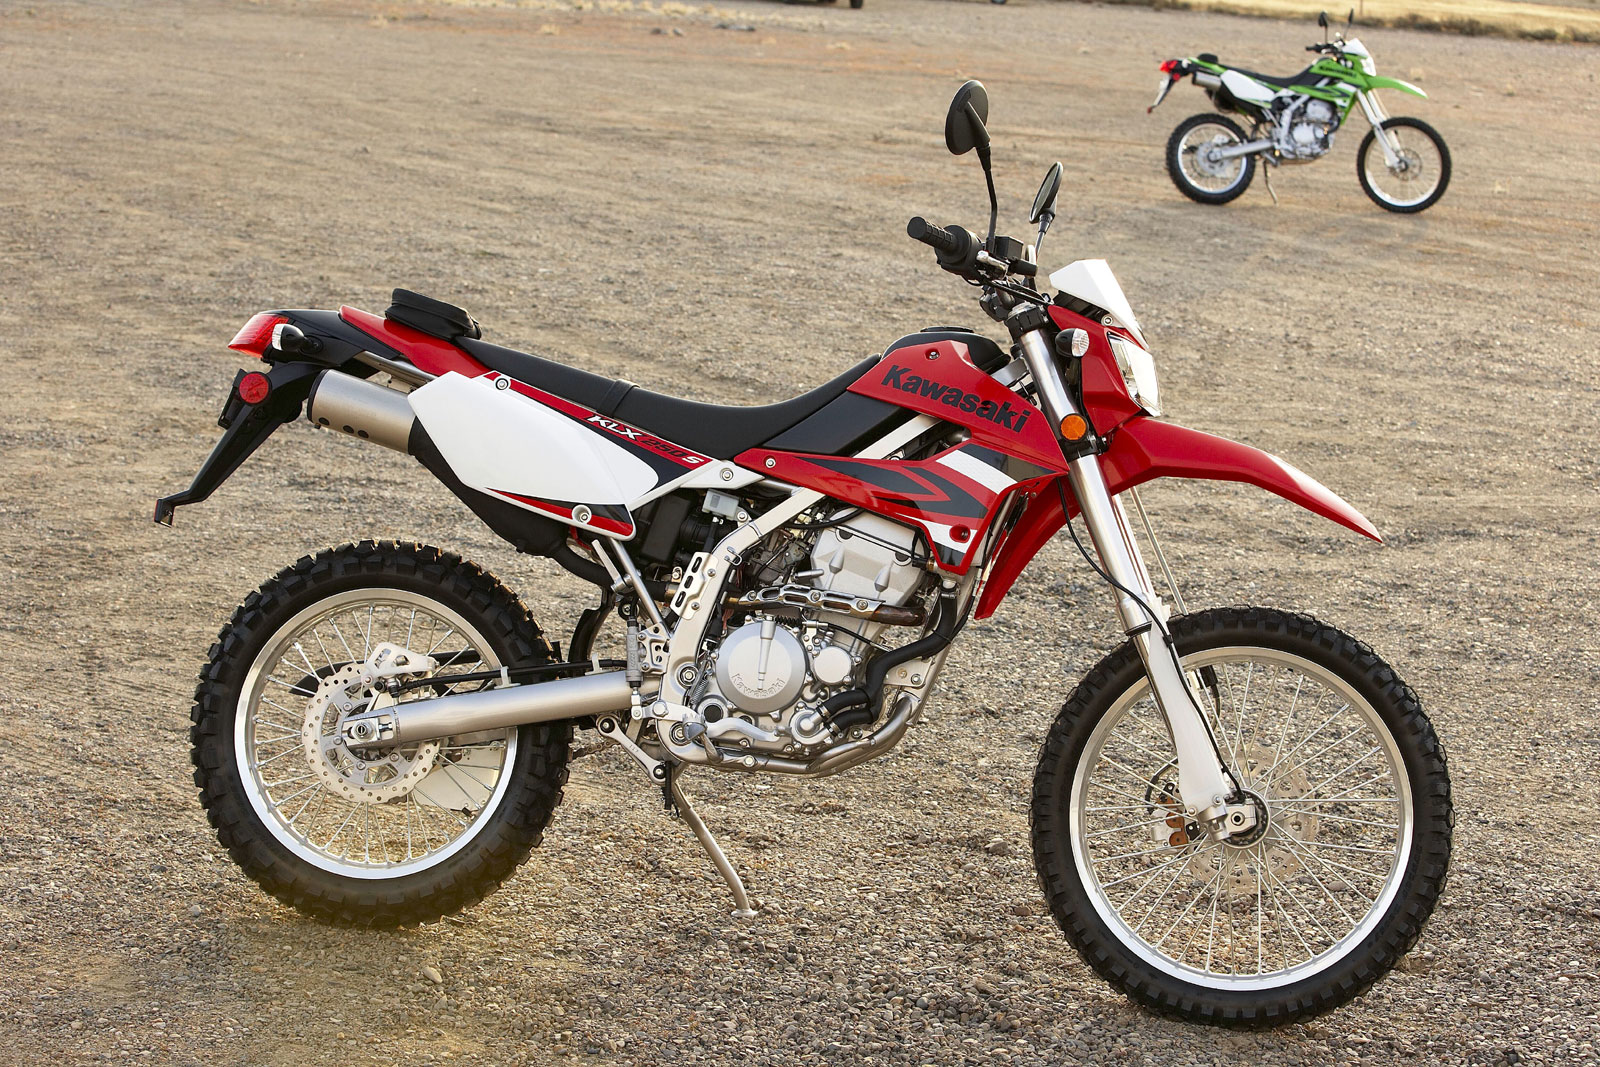 Klr250 Wiring Diagram | Wiring Diagram on